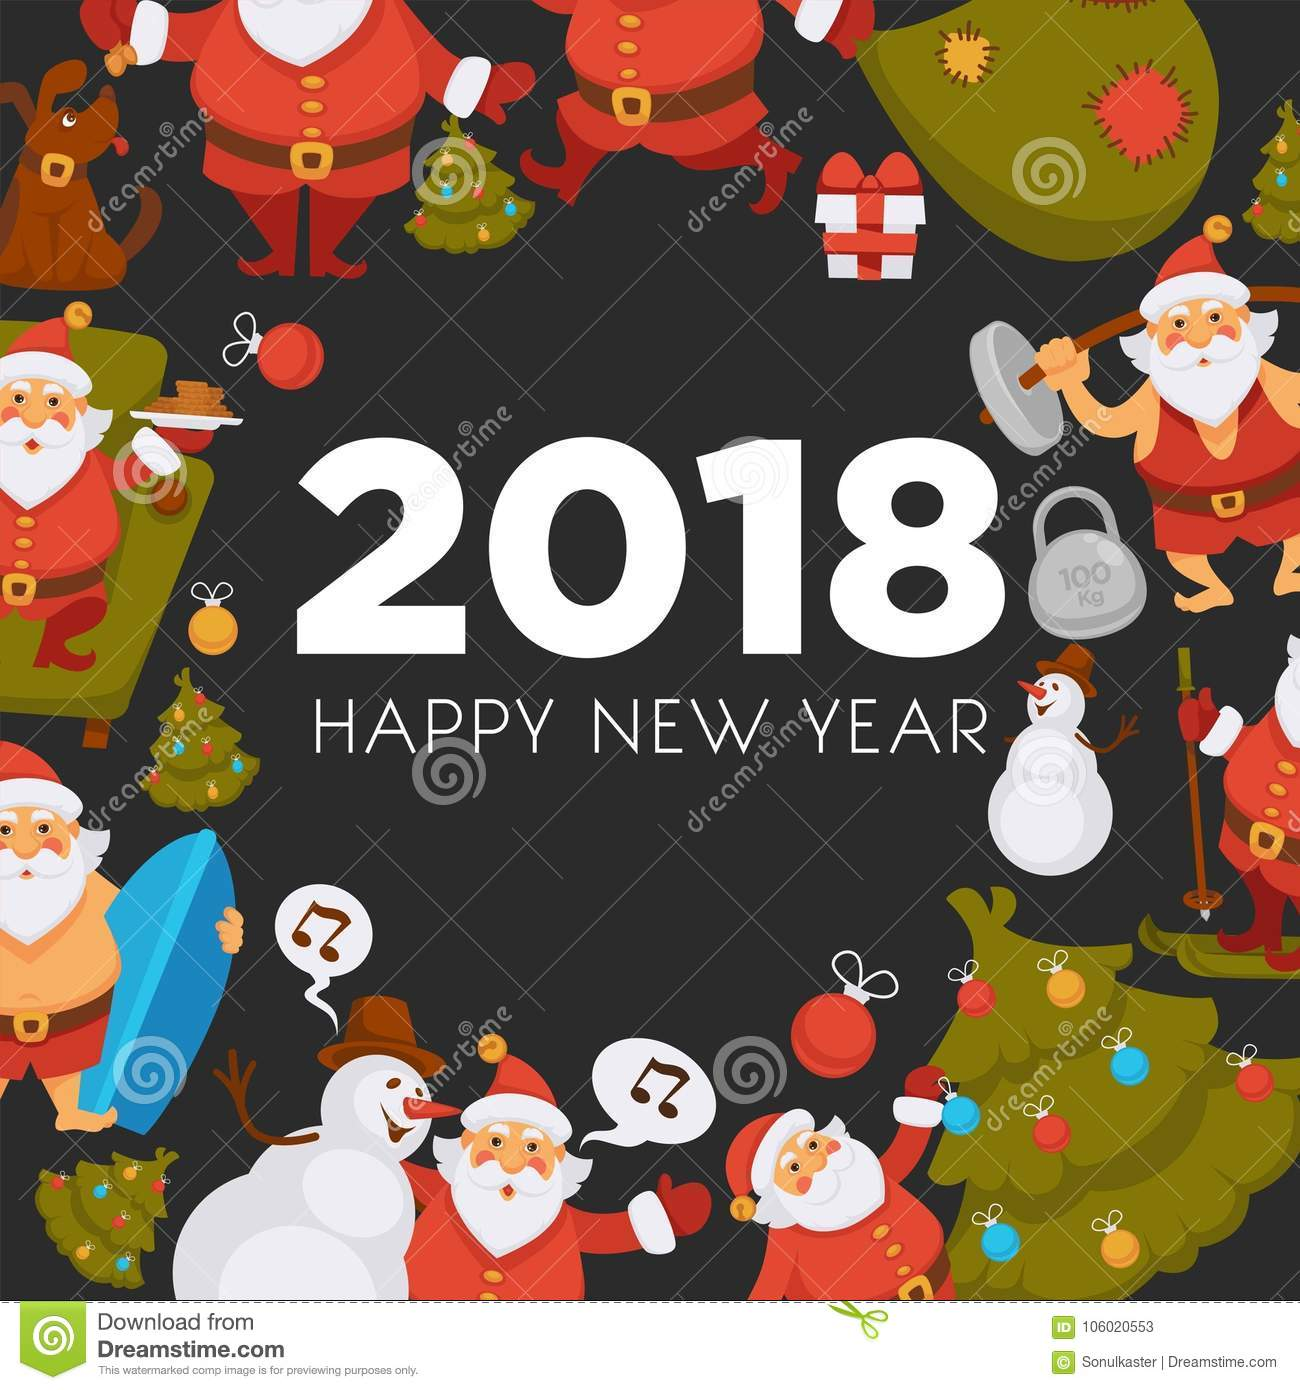 Happy New Year Cartoon Santa Celebrating Holidays Or Having Leisure Summer  Fun Icons For Greeting Card Design.